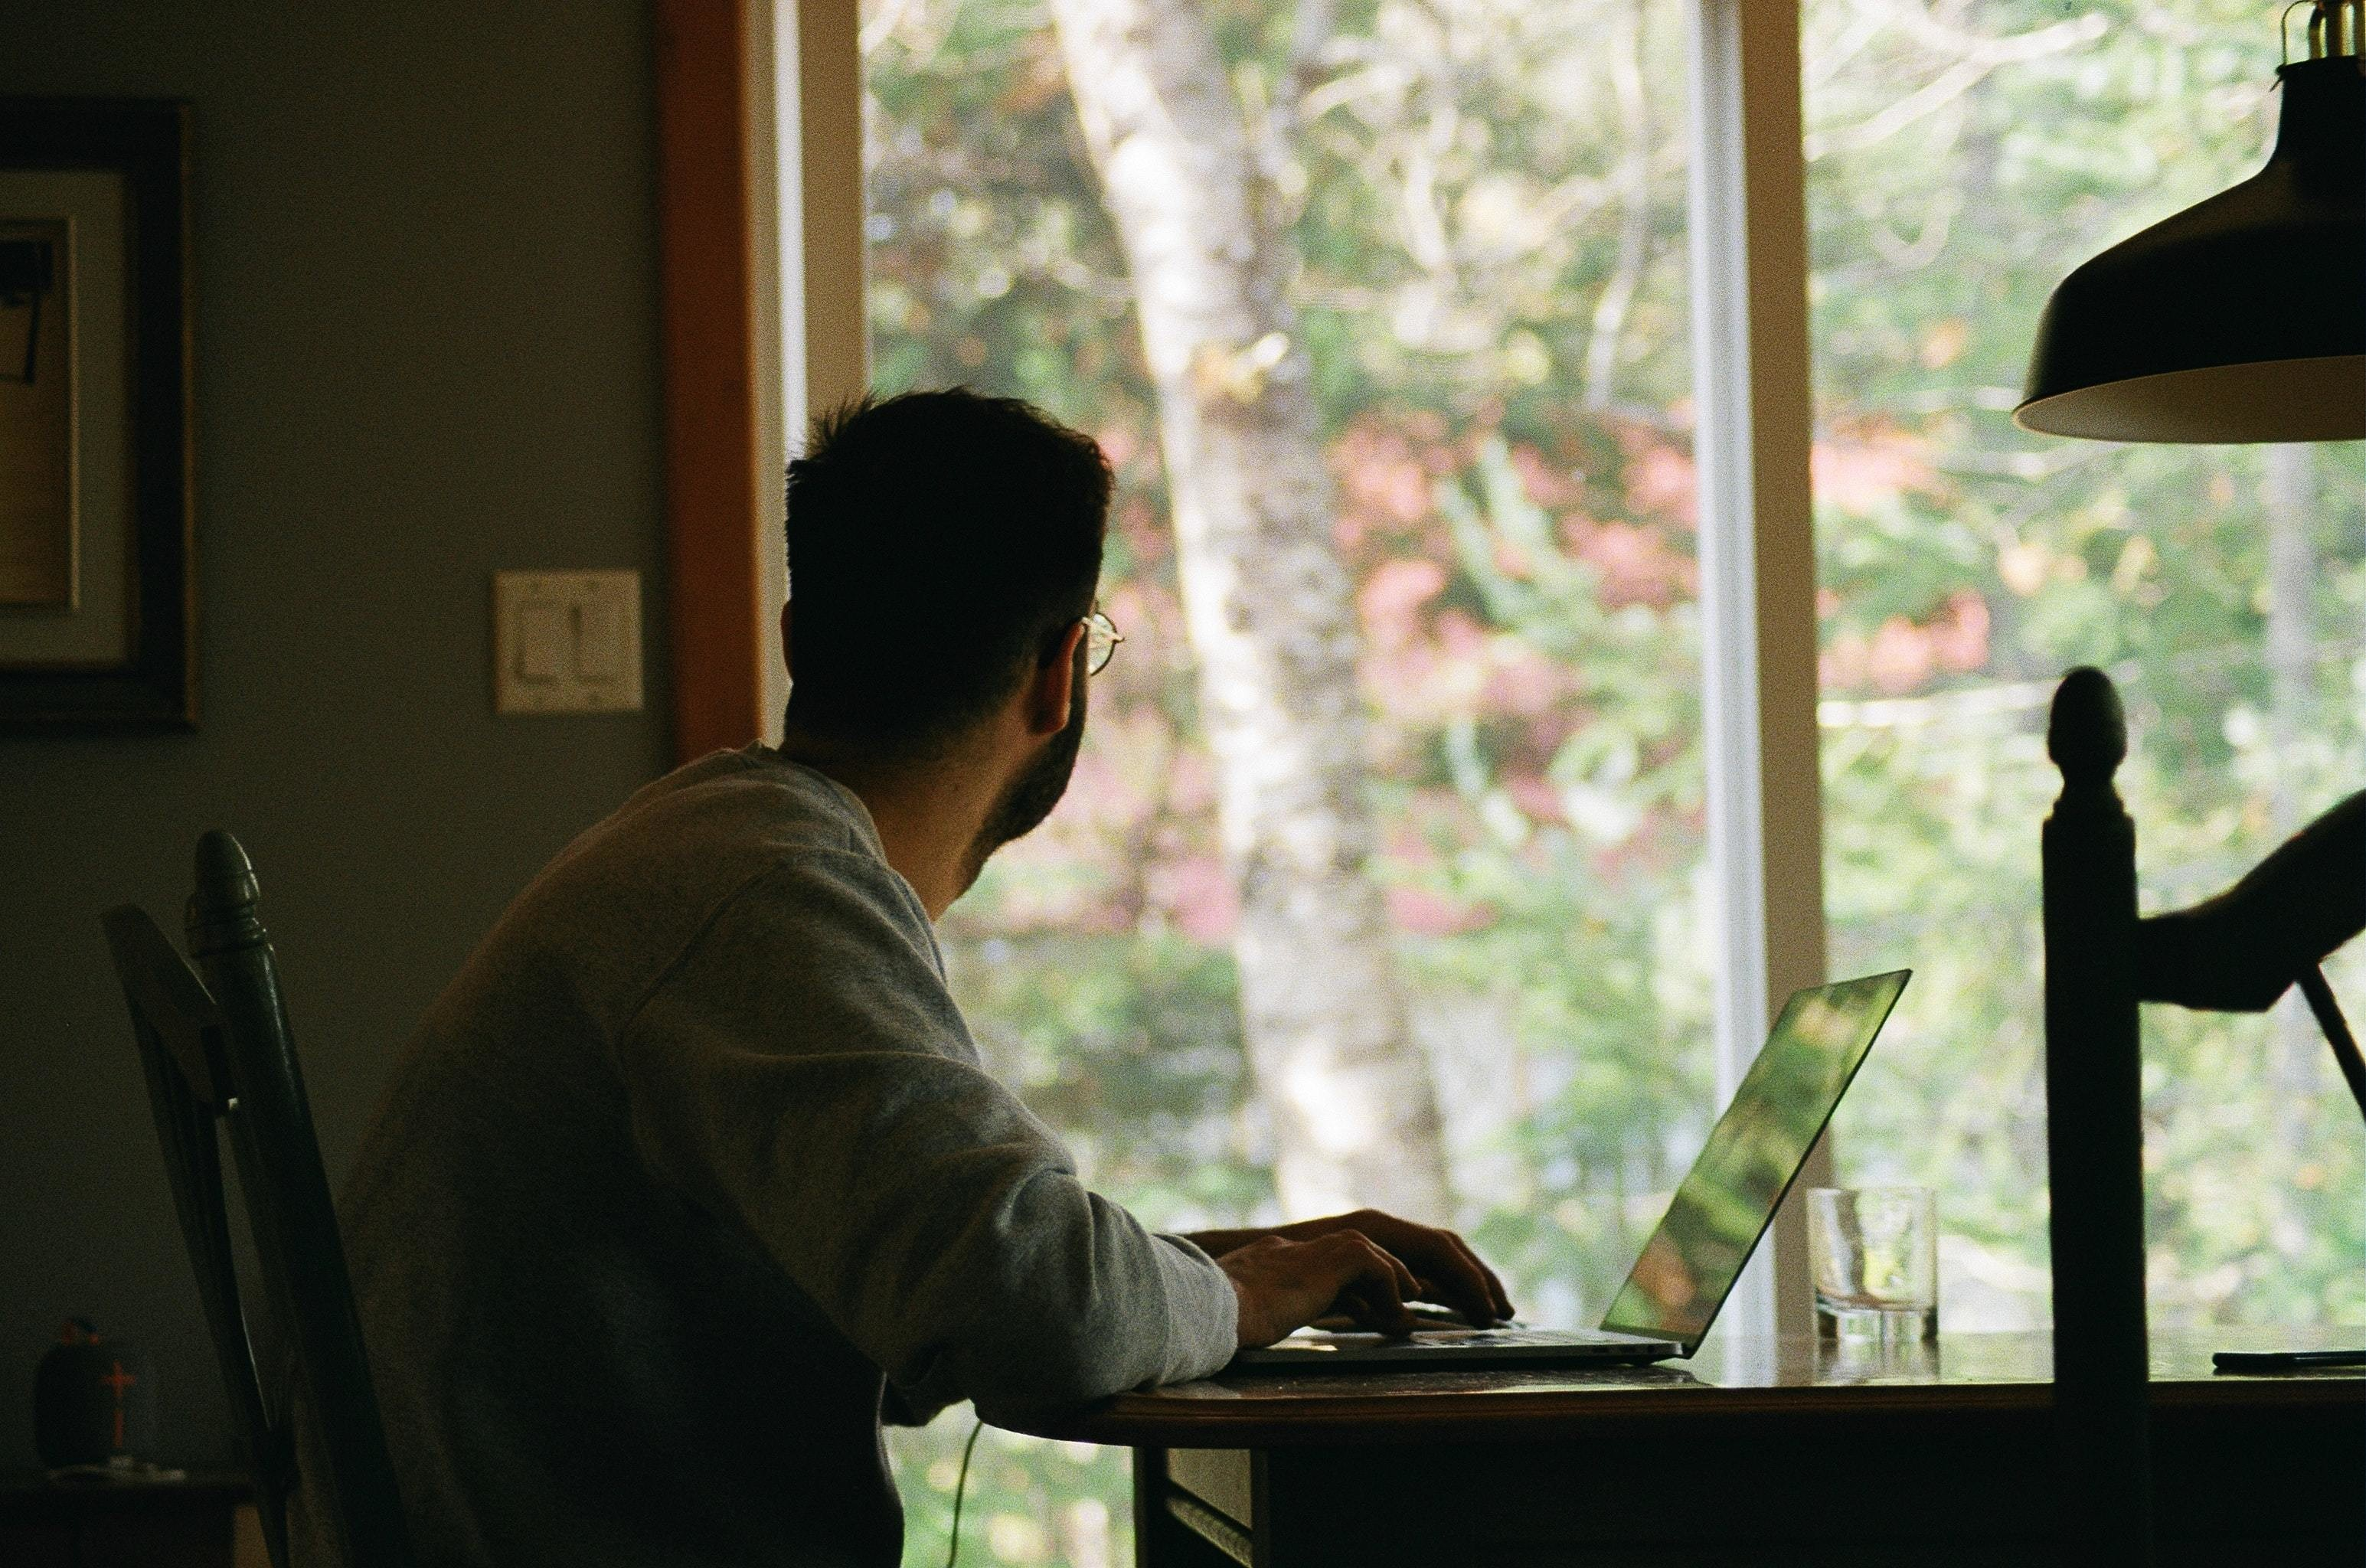 A man working from home looks away from his screen to gaze at the outside world